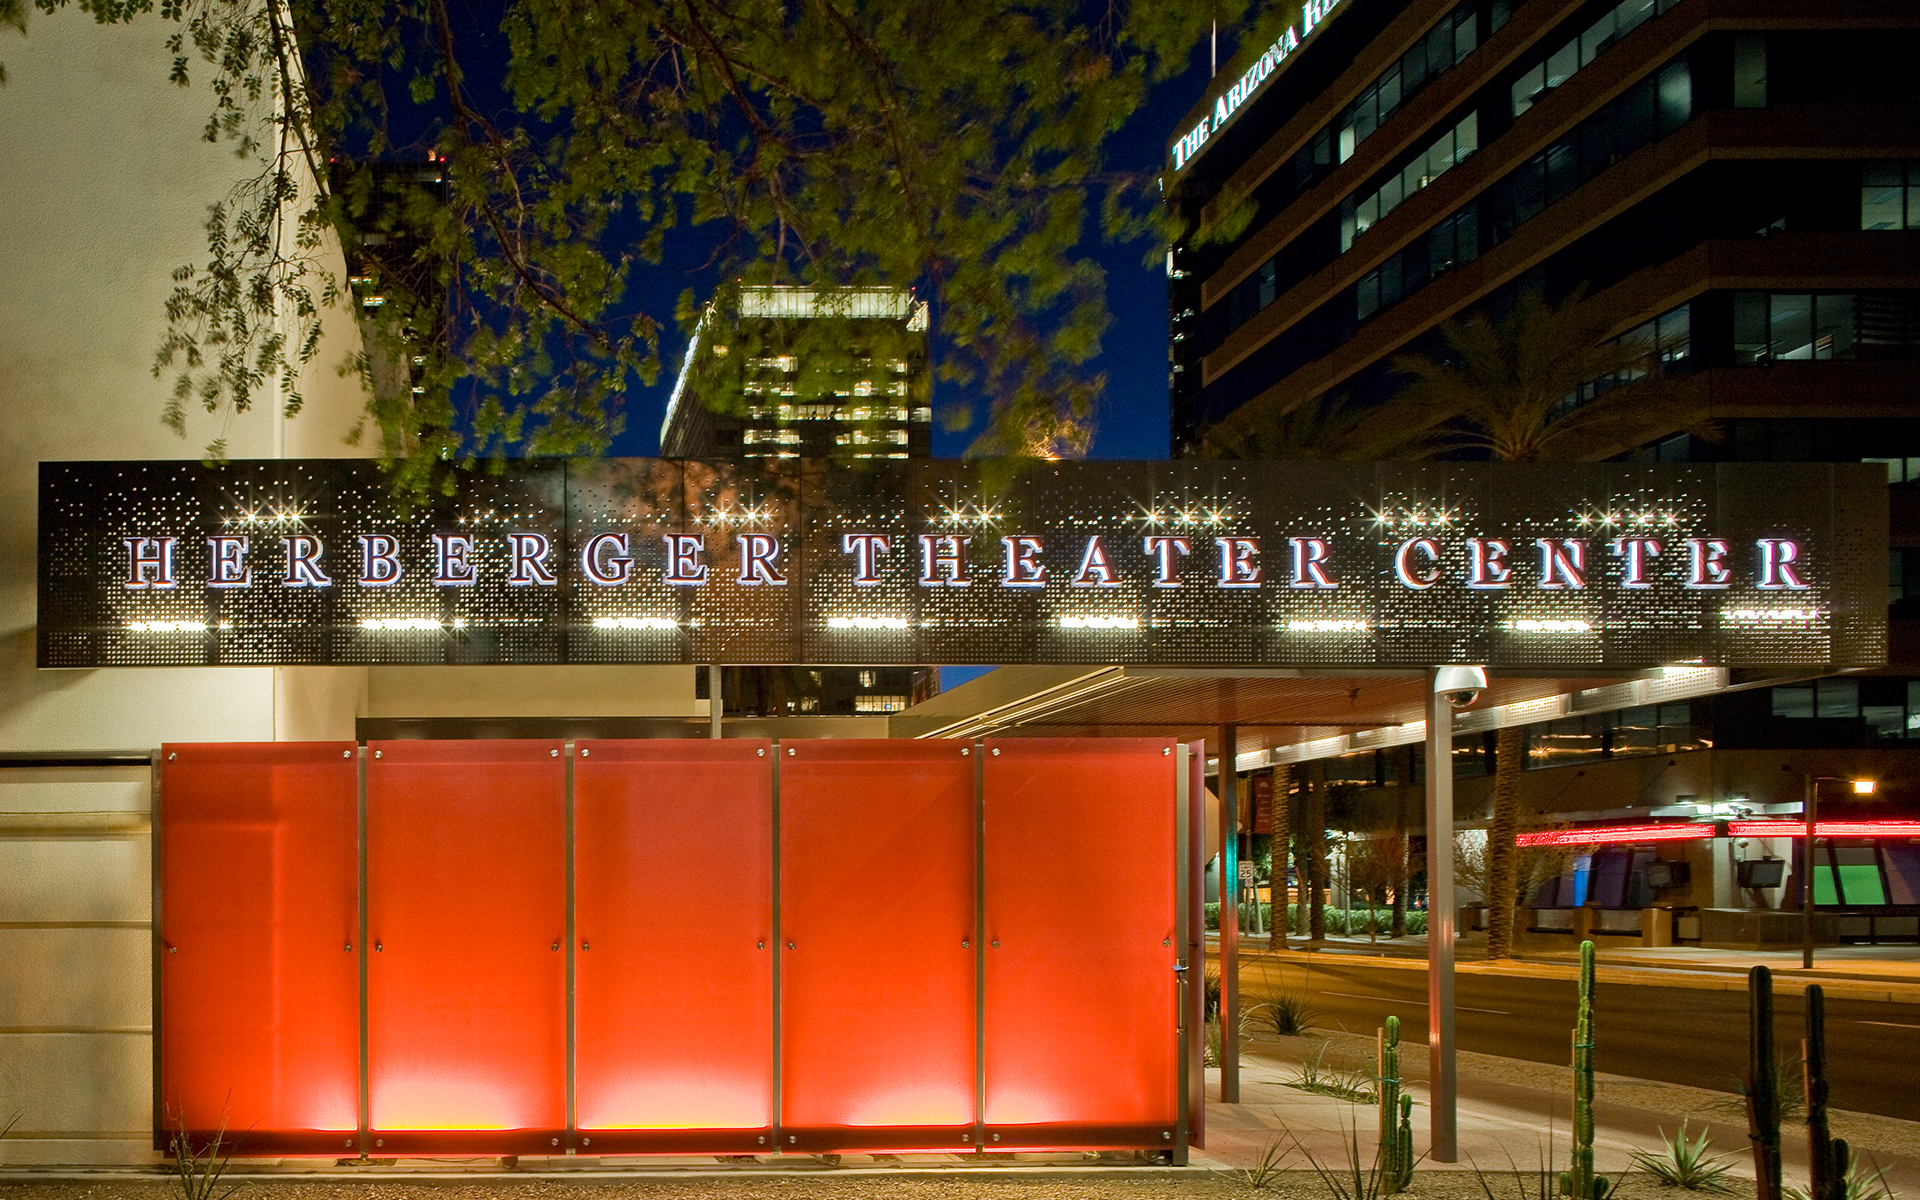 city of phoenix renovation, theater design, theater renovation, theater phoenix, theater design phoenix, Herberger Theater Center, renovation phoenix, downtown phoenix, herberger, downtown phoenix theater, Gould Evans, canary, canary studio, architecture, phoenix design, phoenix architecture, architecture downtown phoenix, downtown phoenix designer, phoenix architect, interior designer phoenix, hospitality design phoenix, hospitality design, storefront design, retail design, experiential design